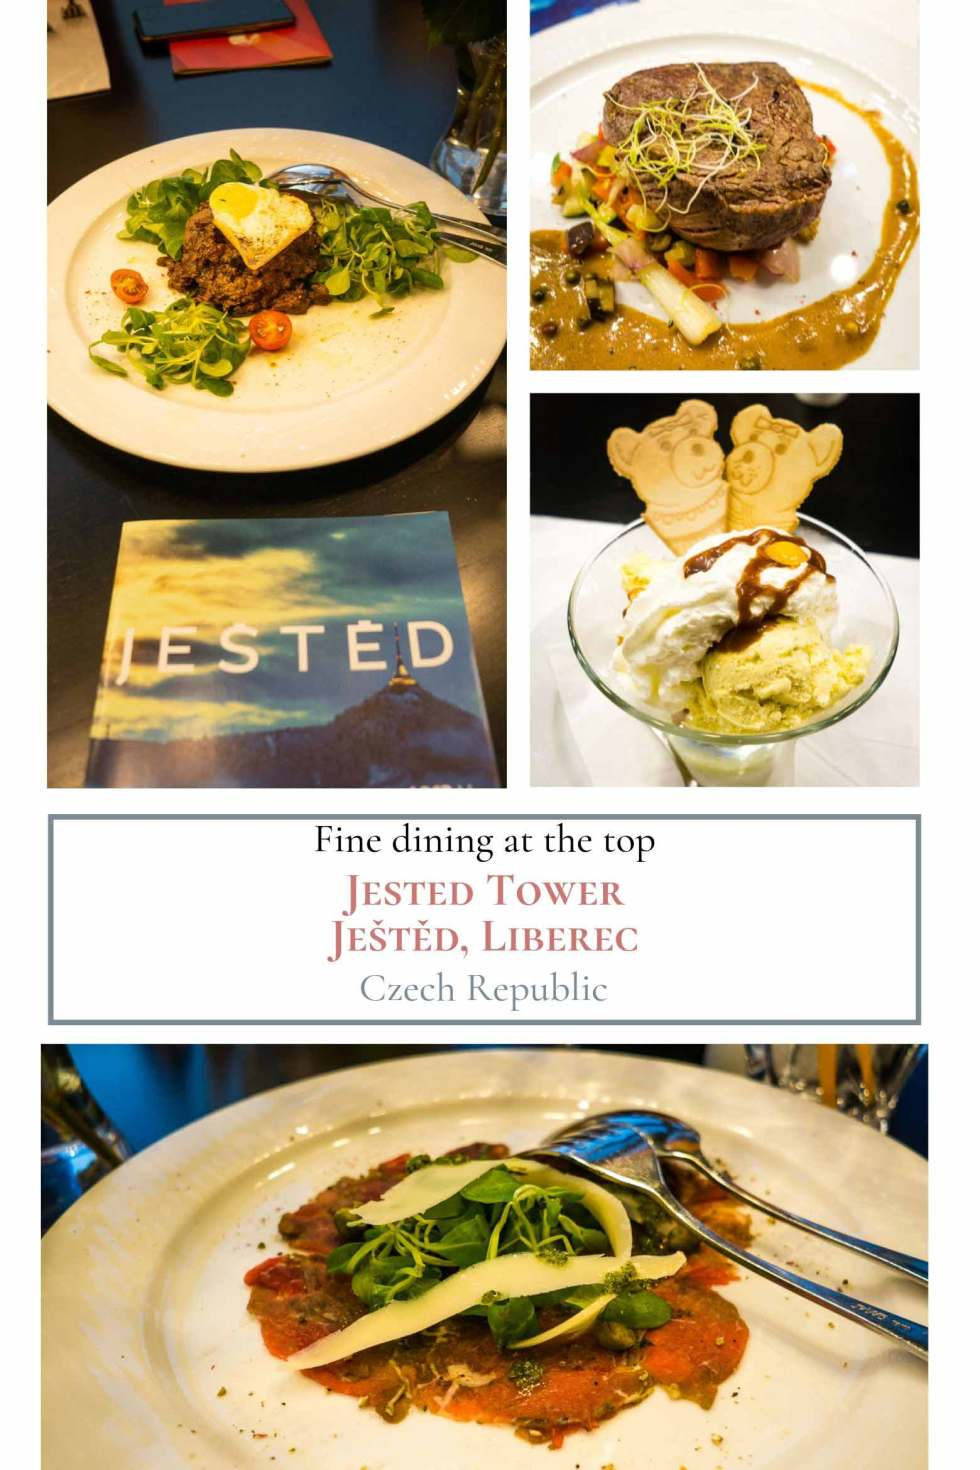 Selections from the restaurant in a collage